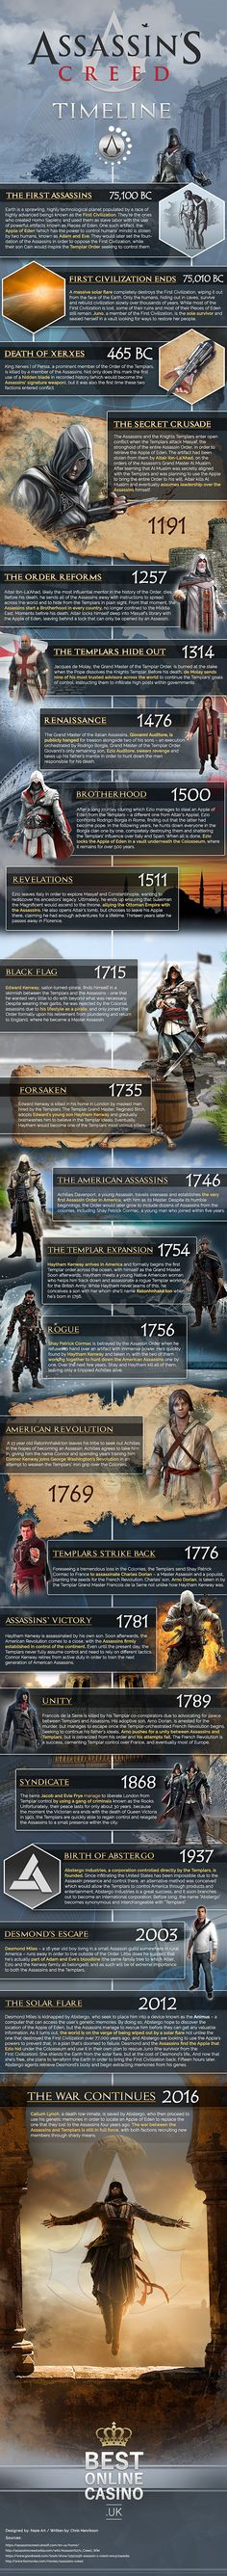 Assassins Creed Timeline http://geekxgirls.com/article.php?ID=8965